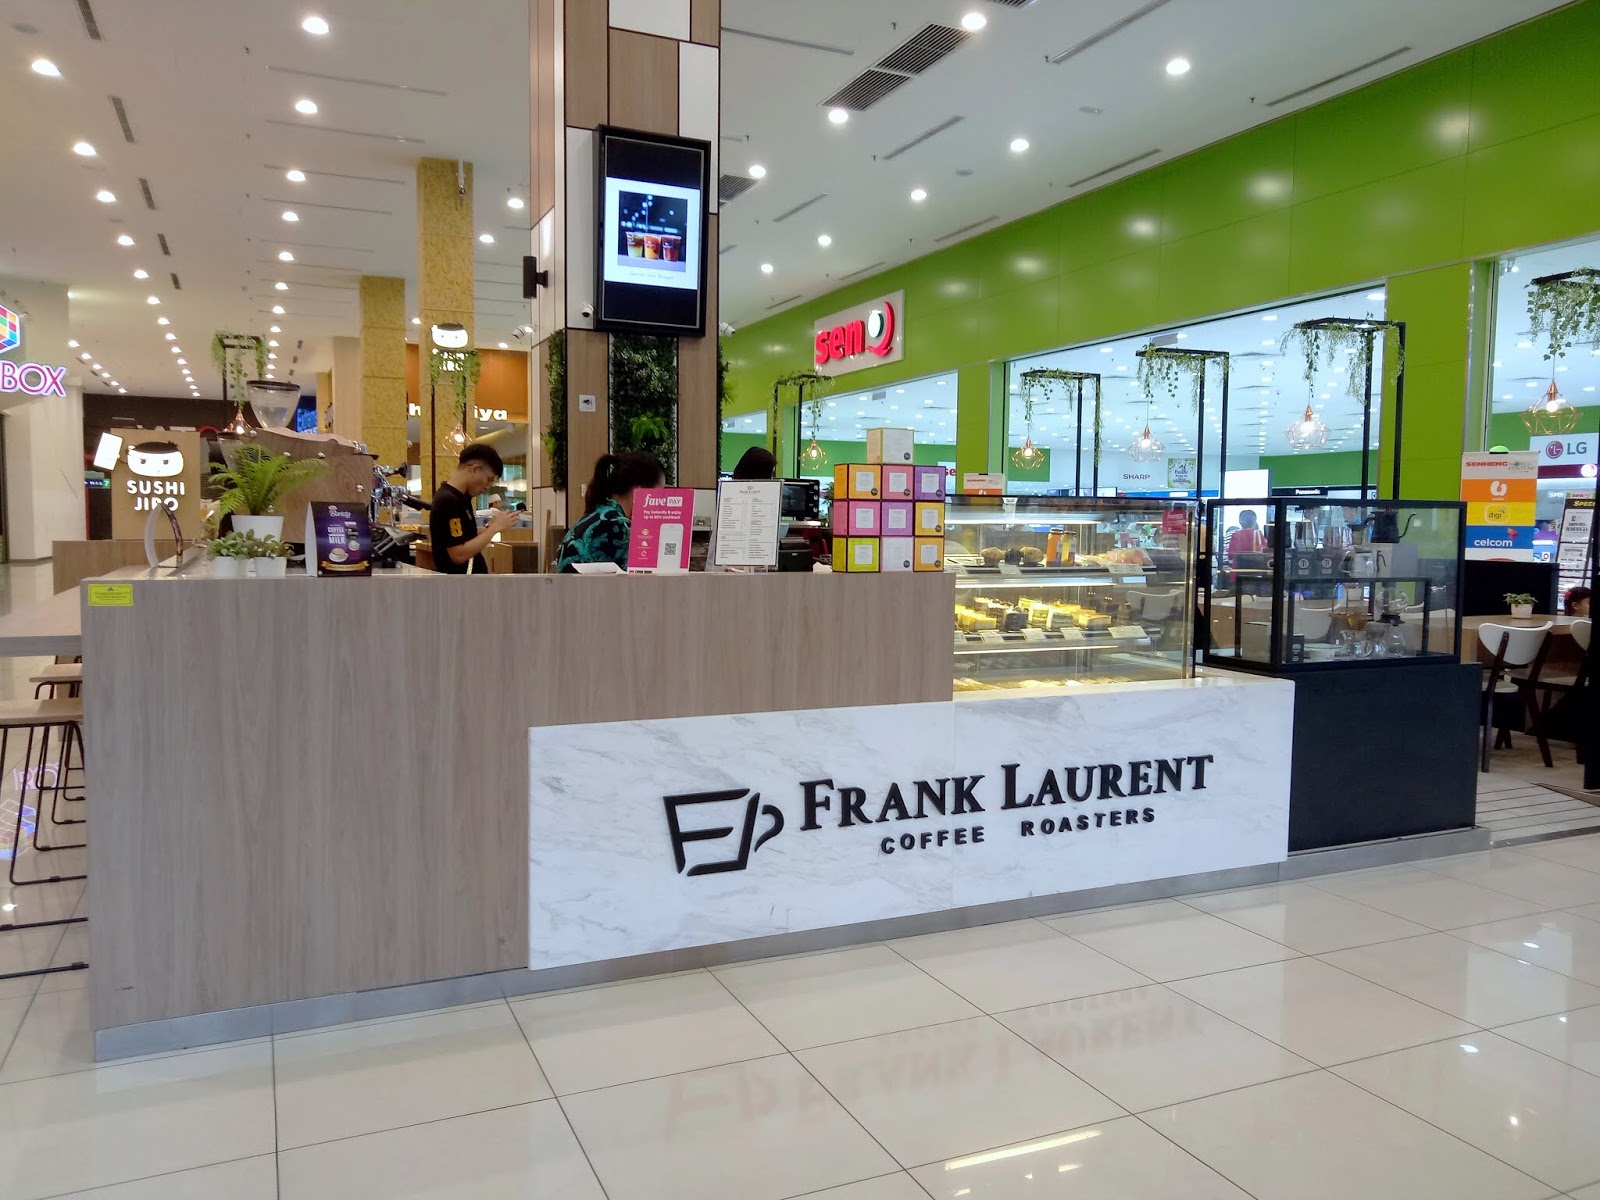 Penang Food For Thought: Frank Laurent